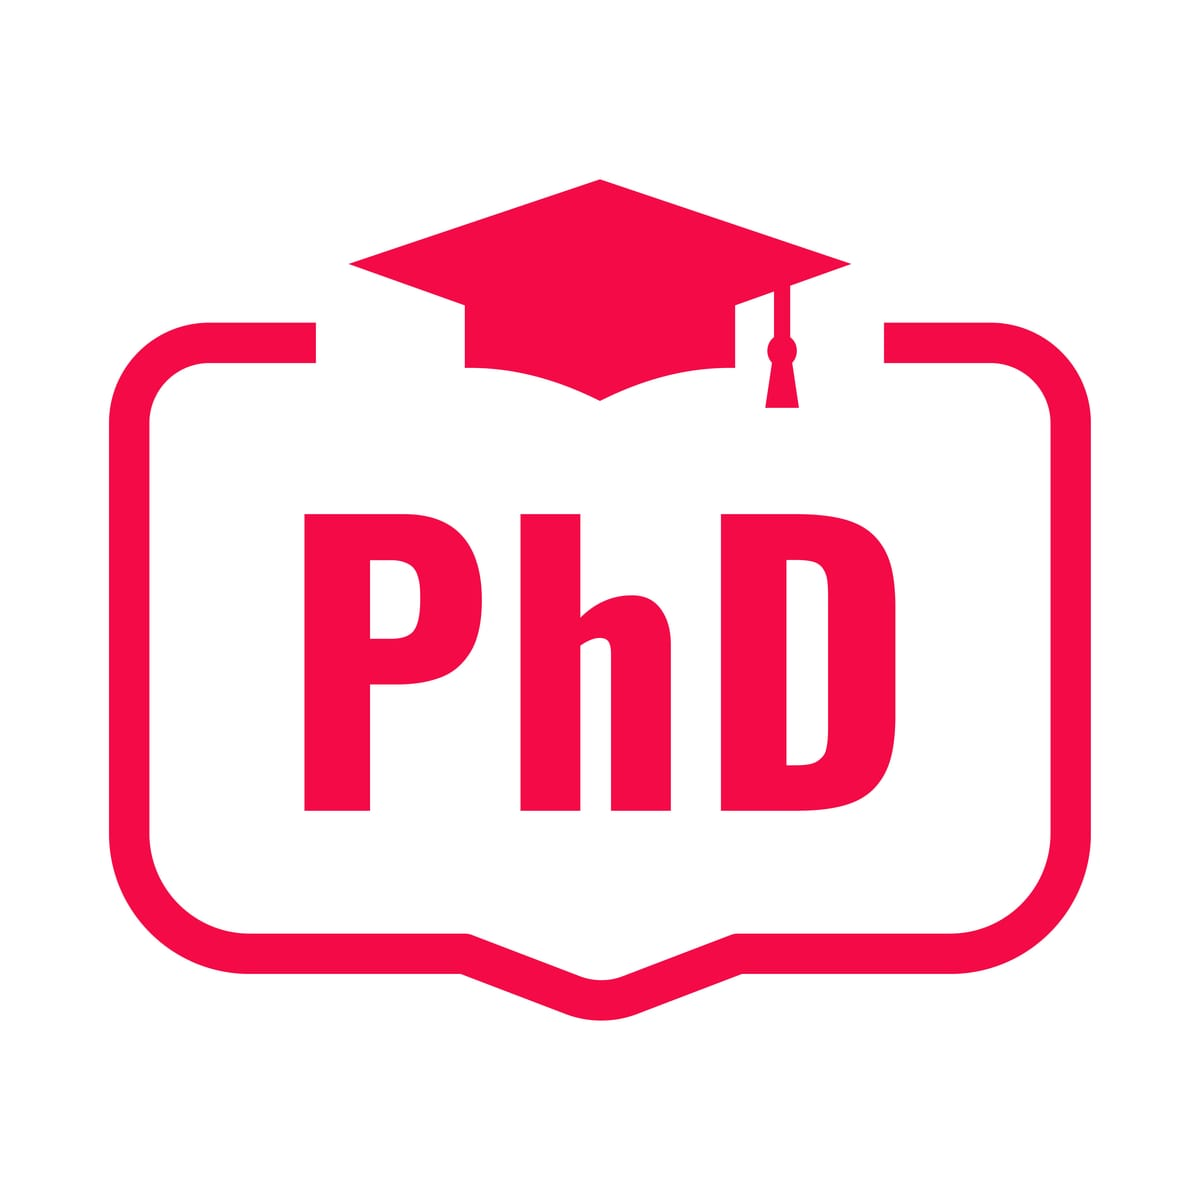 Cheap dissertation results writers services for school